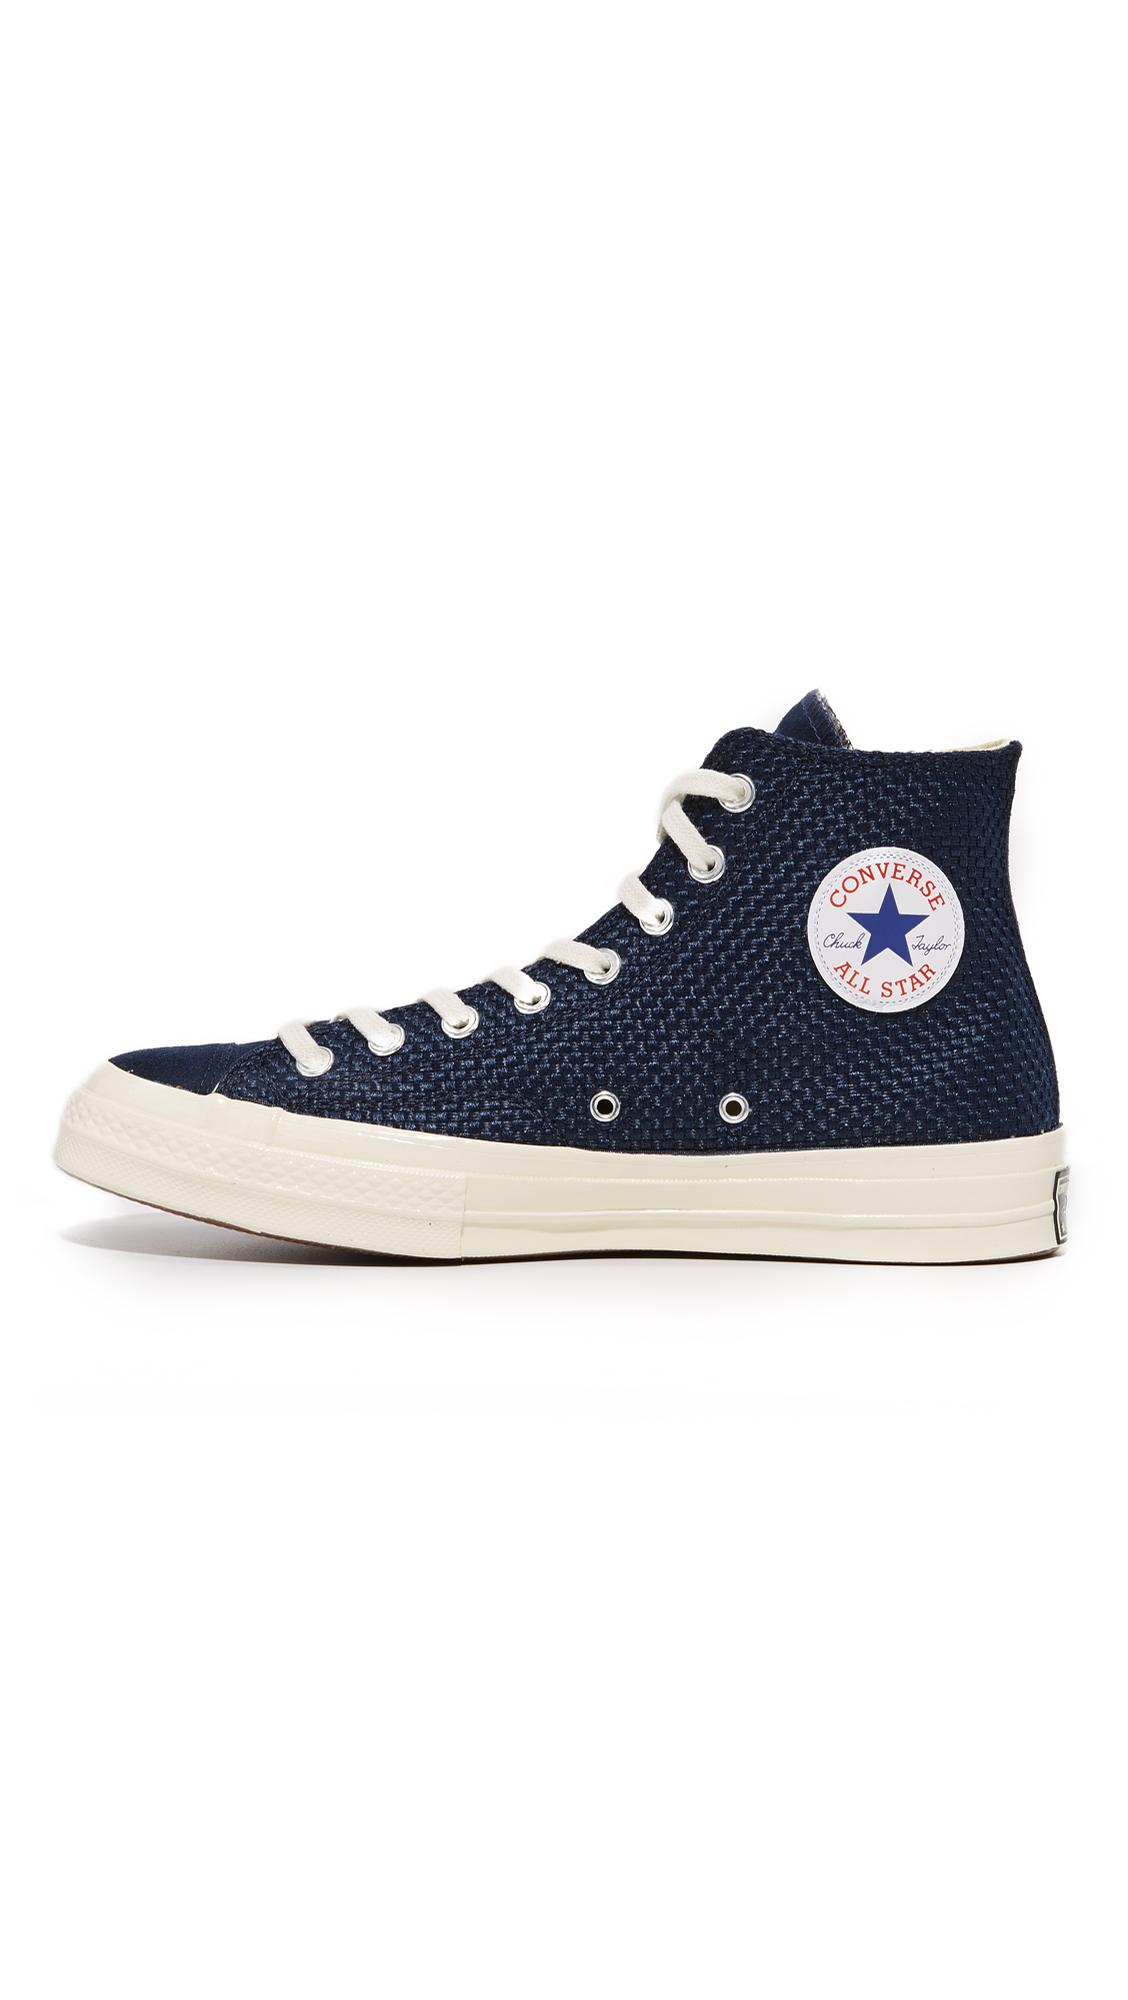 low cost 220cd 66689 Converse Chuck Taylor All Star  70s Woven High Top Sneakers in Blue ...